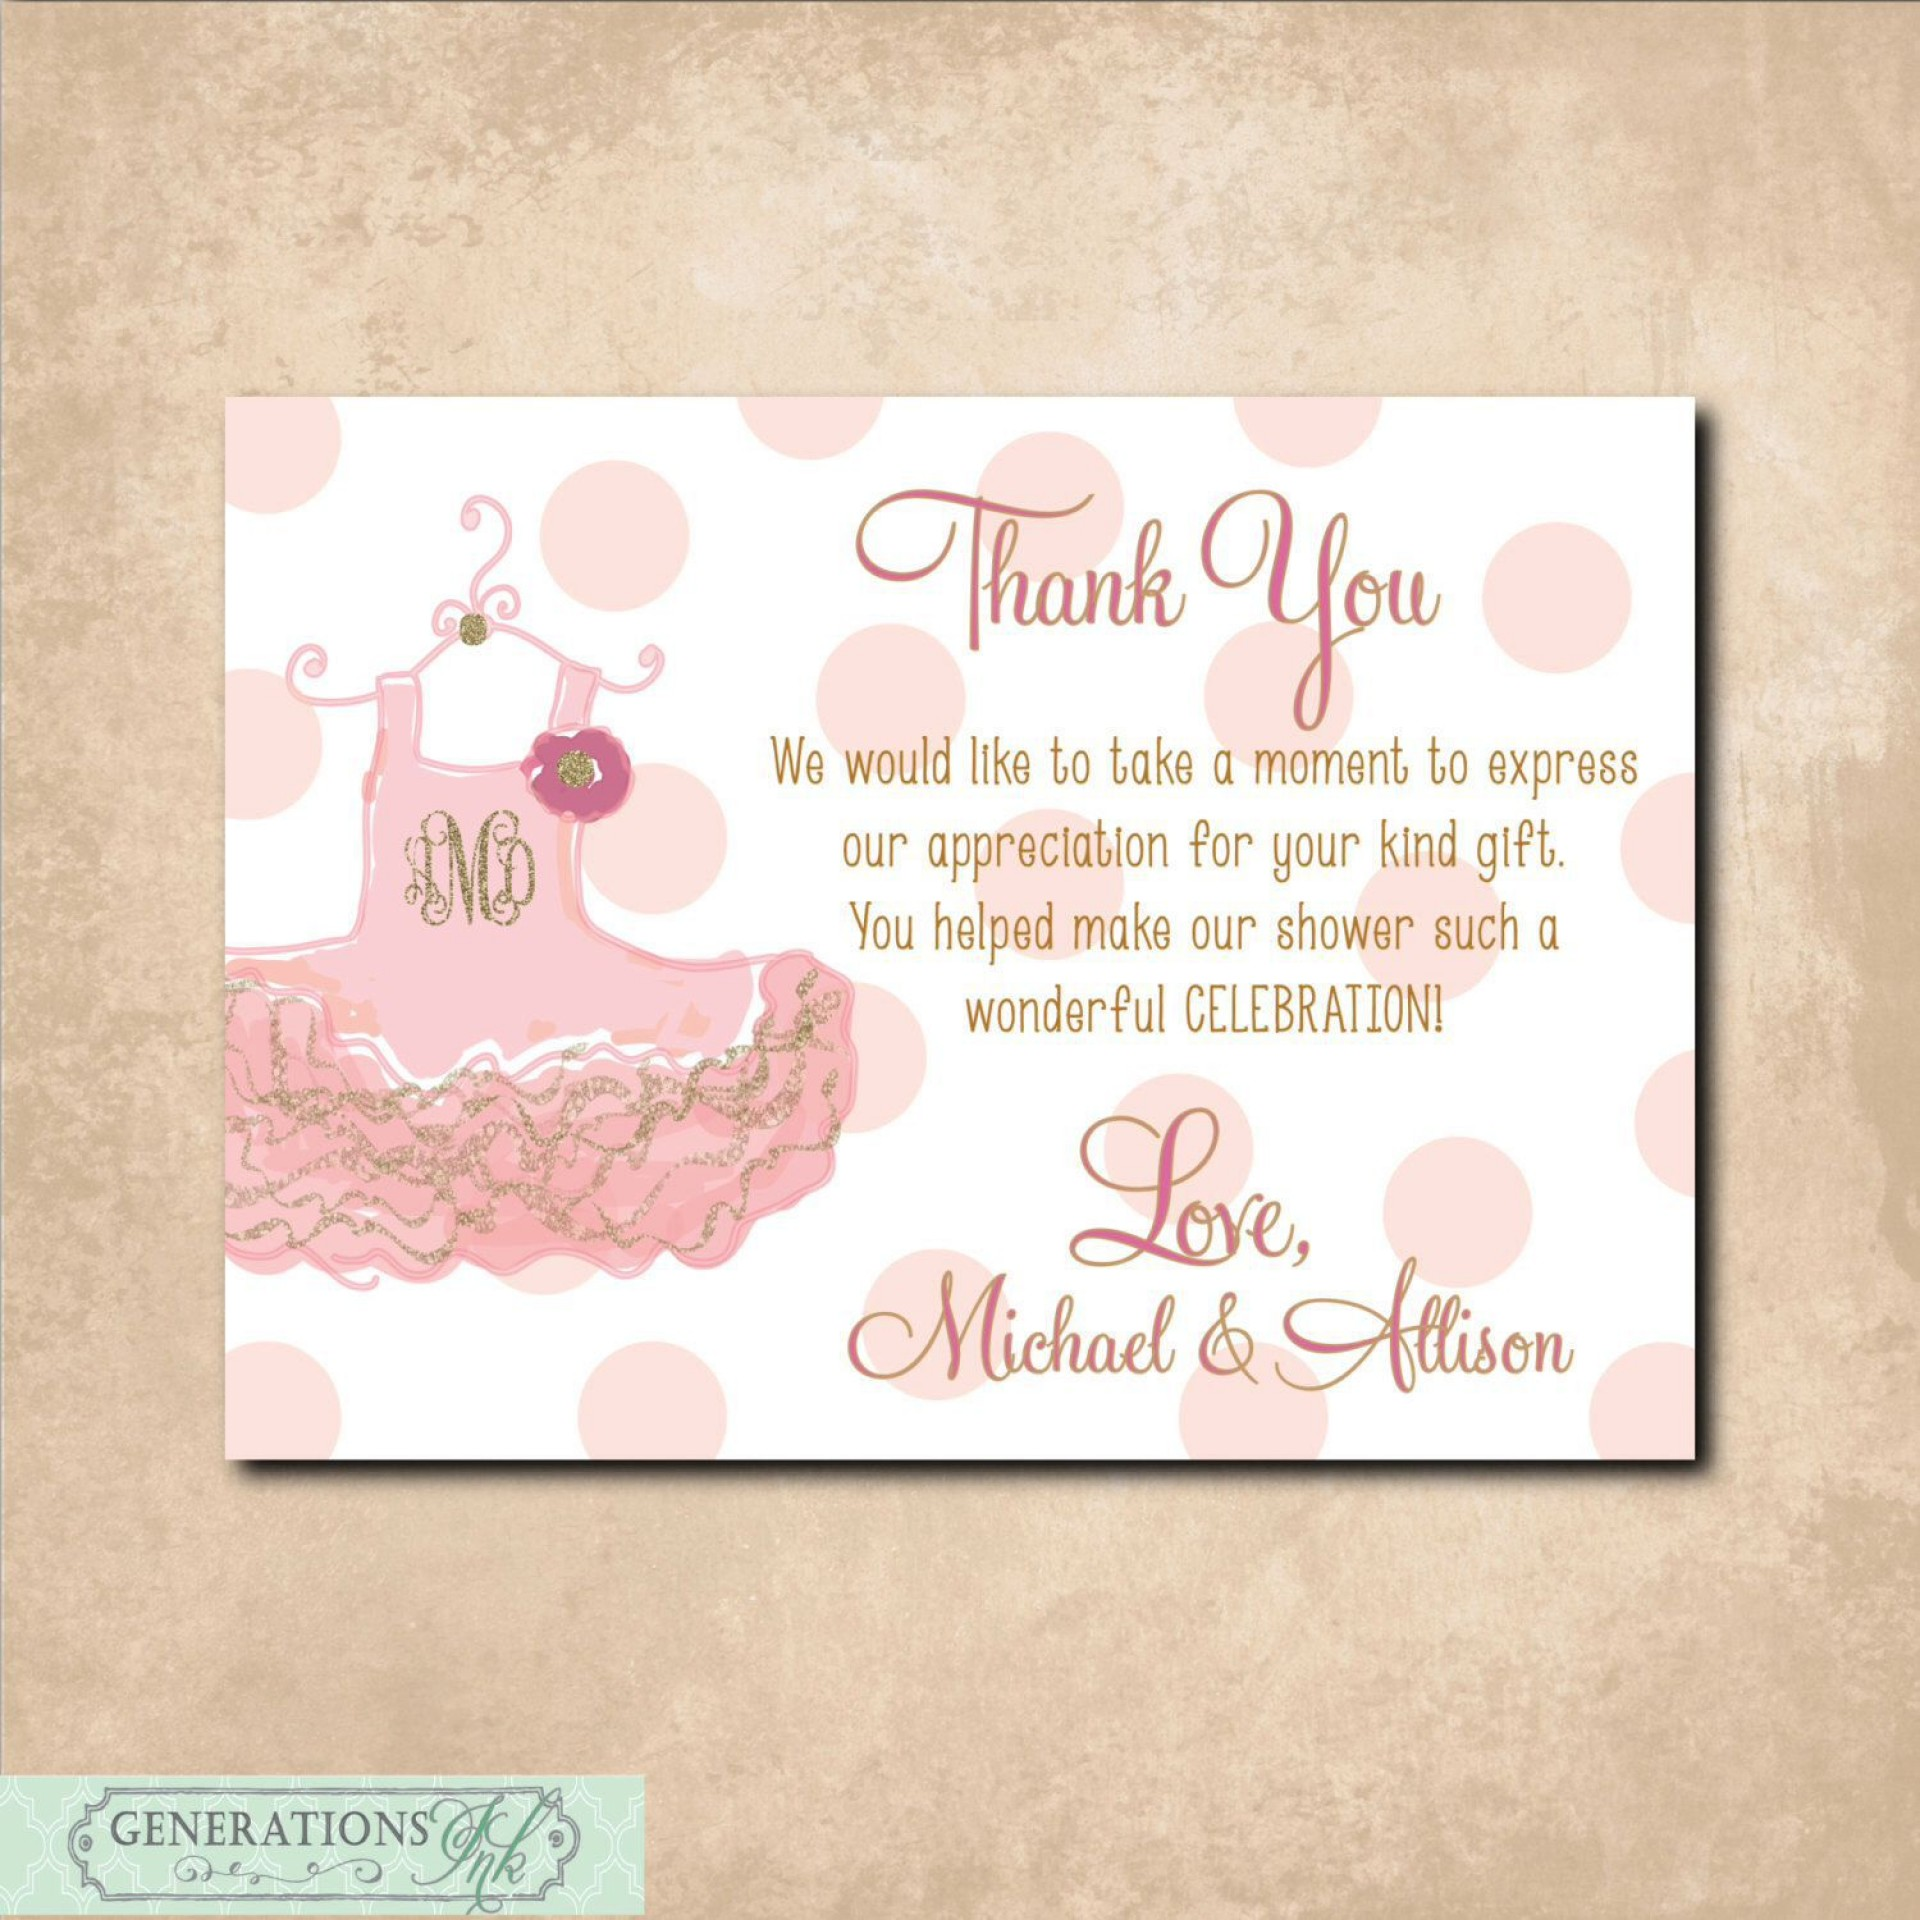 001 Magnificent Thank You Note Wording Baby Shower High Definition  For Hosting Card1920